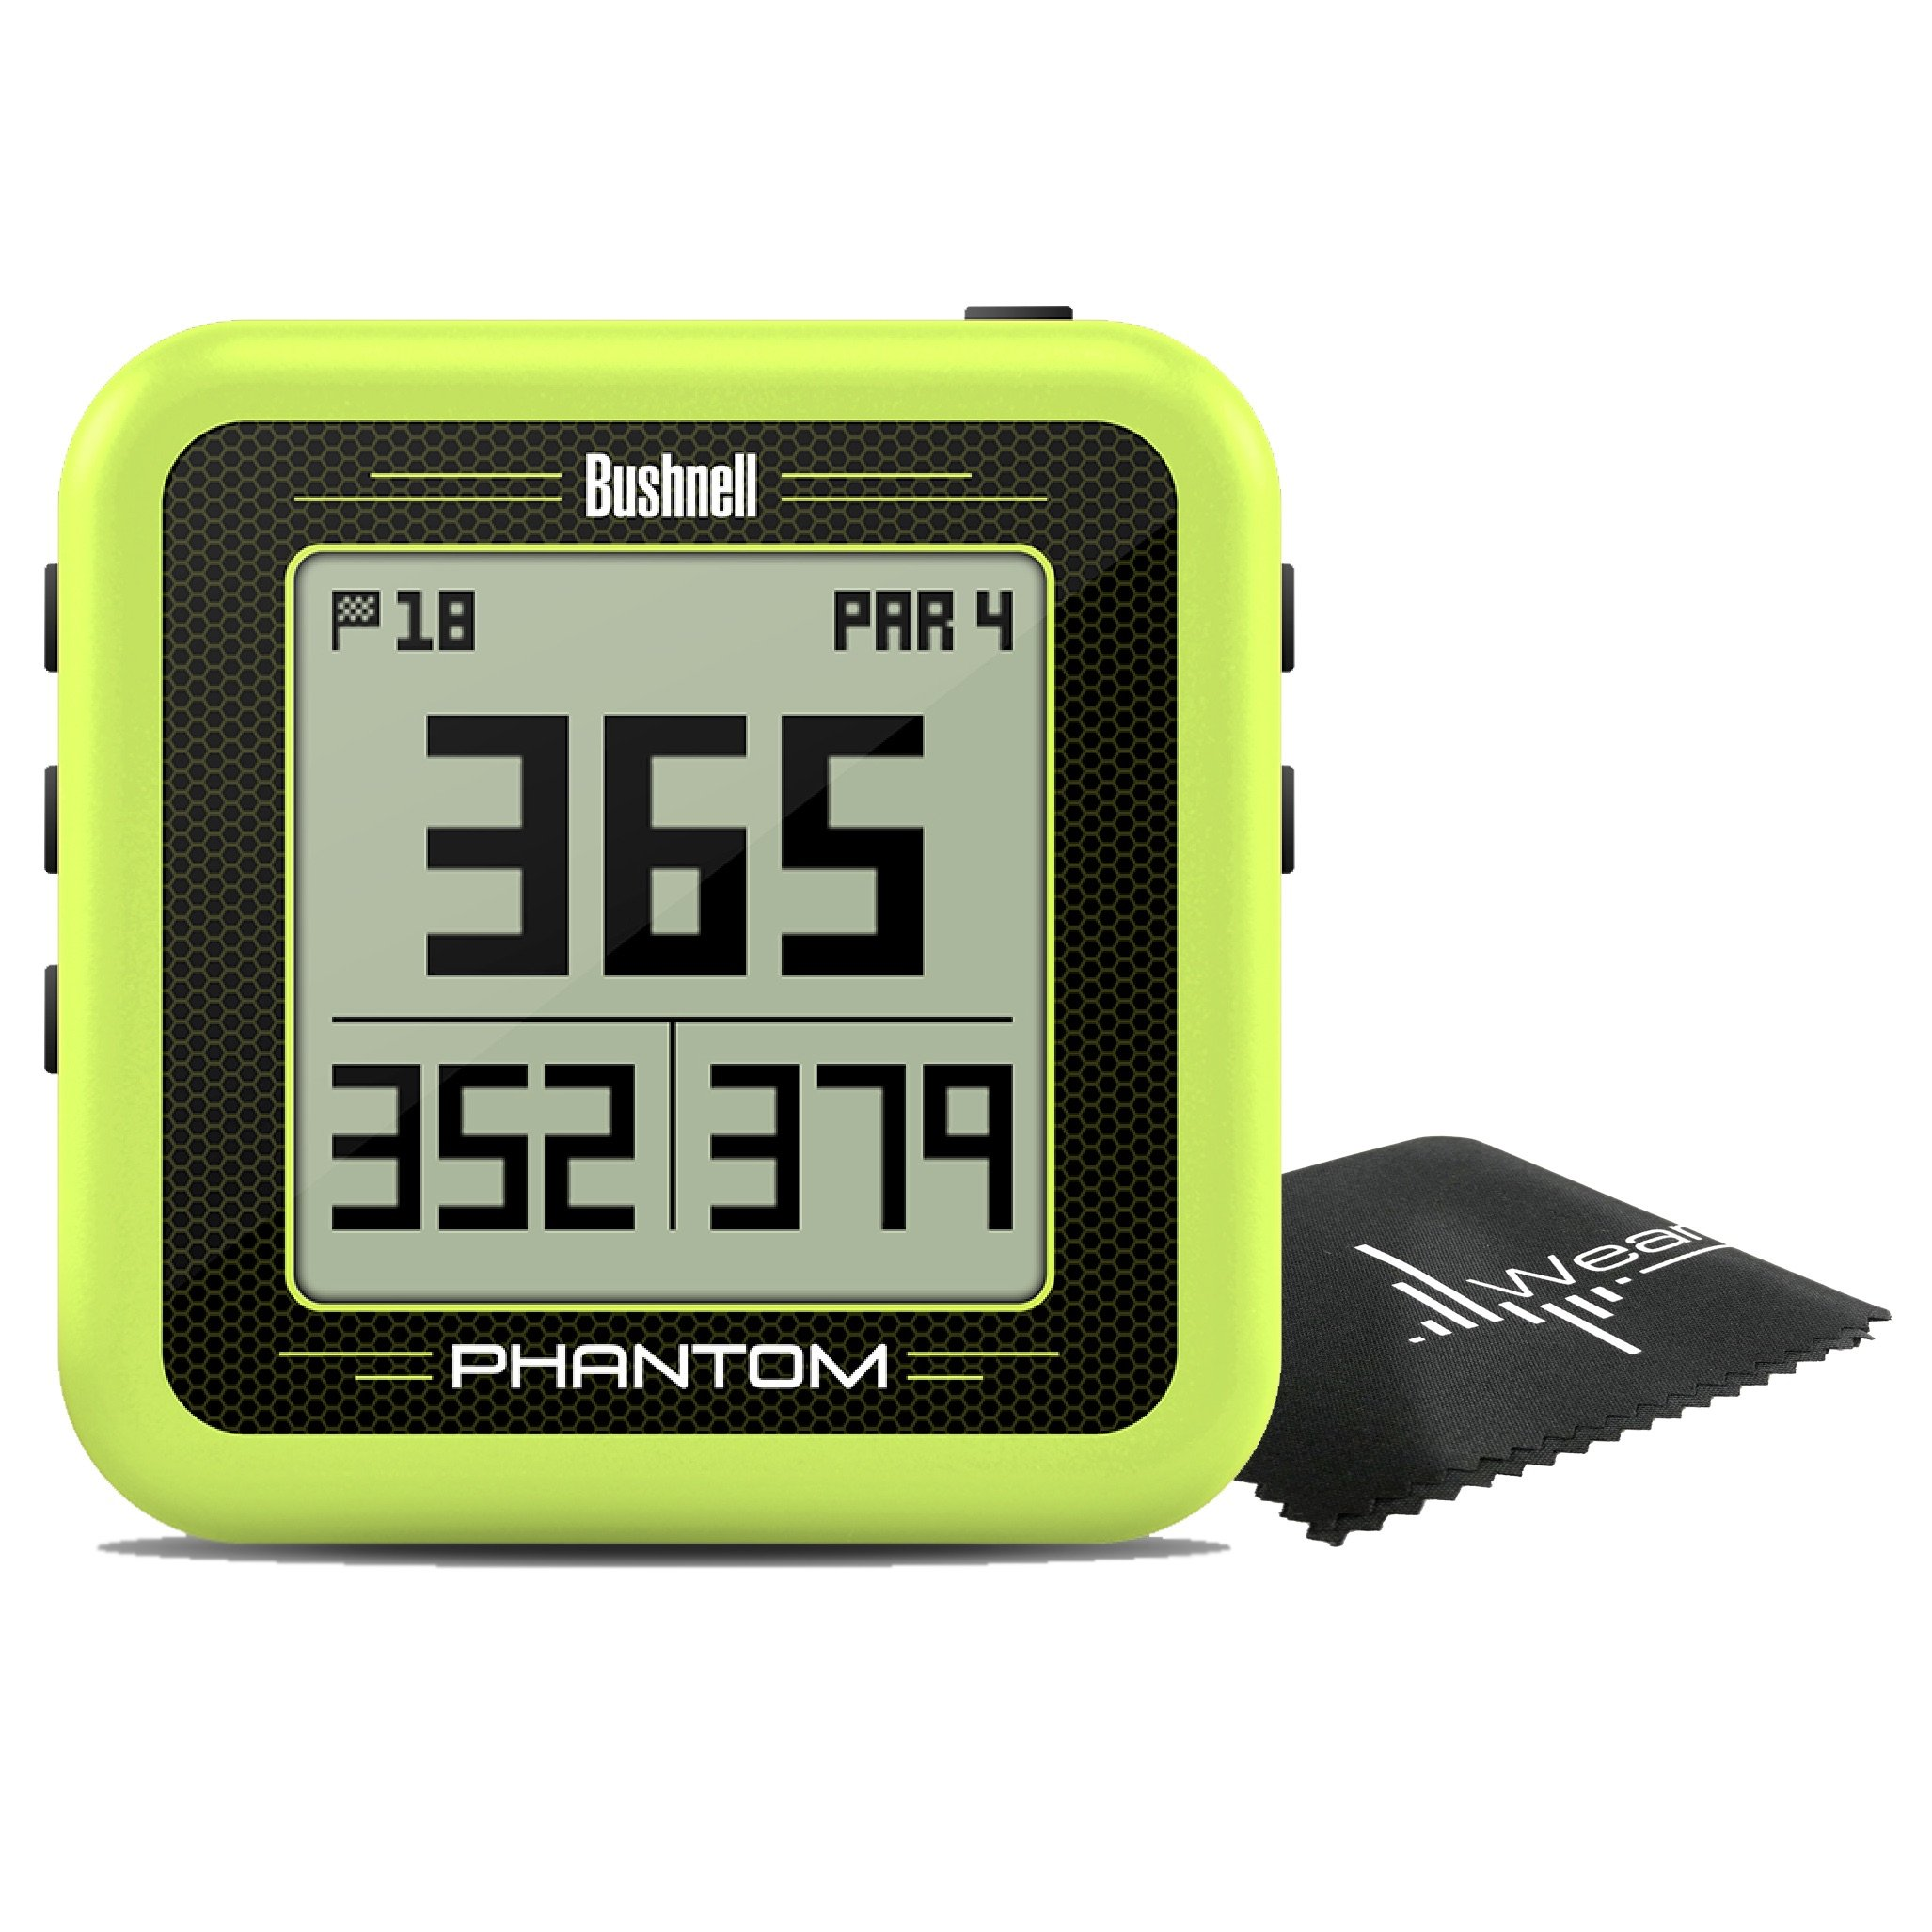 Bushnell Phantom Compact Handheld Golf GPS with Built-In Golf Cart Magnet and Wearable4U towel (Green)